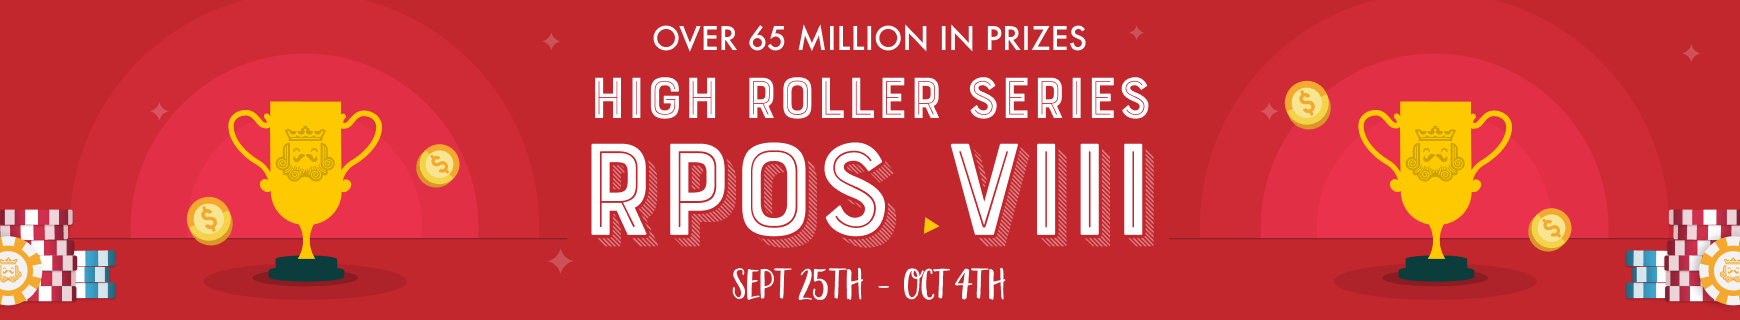 Rpos viii   high roller series   870x160 %28promotion page%29 2x